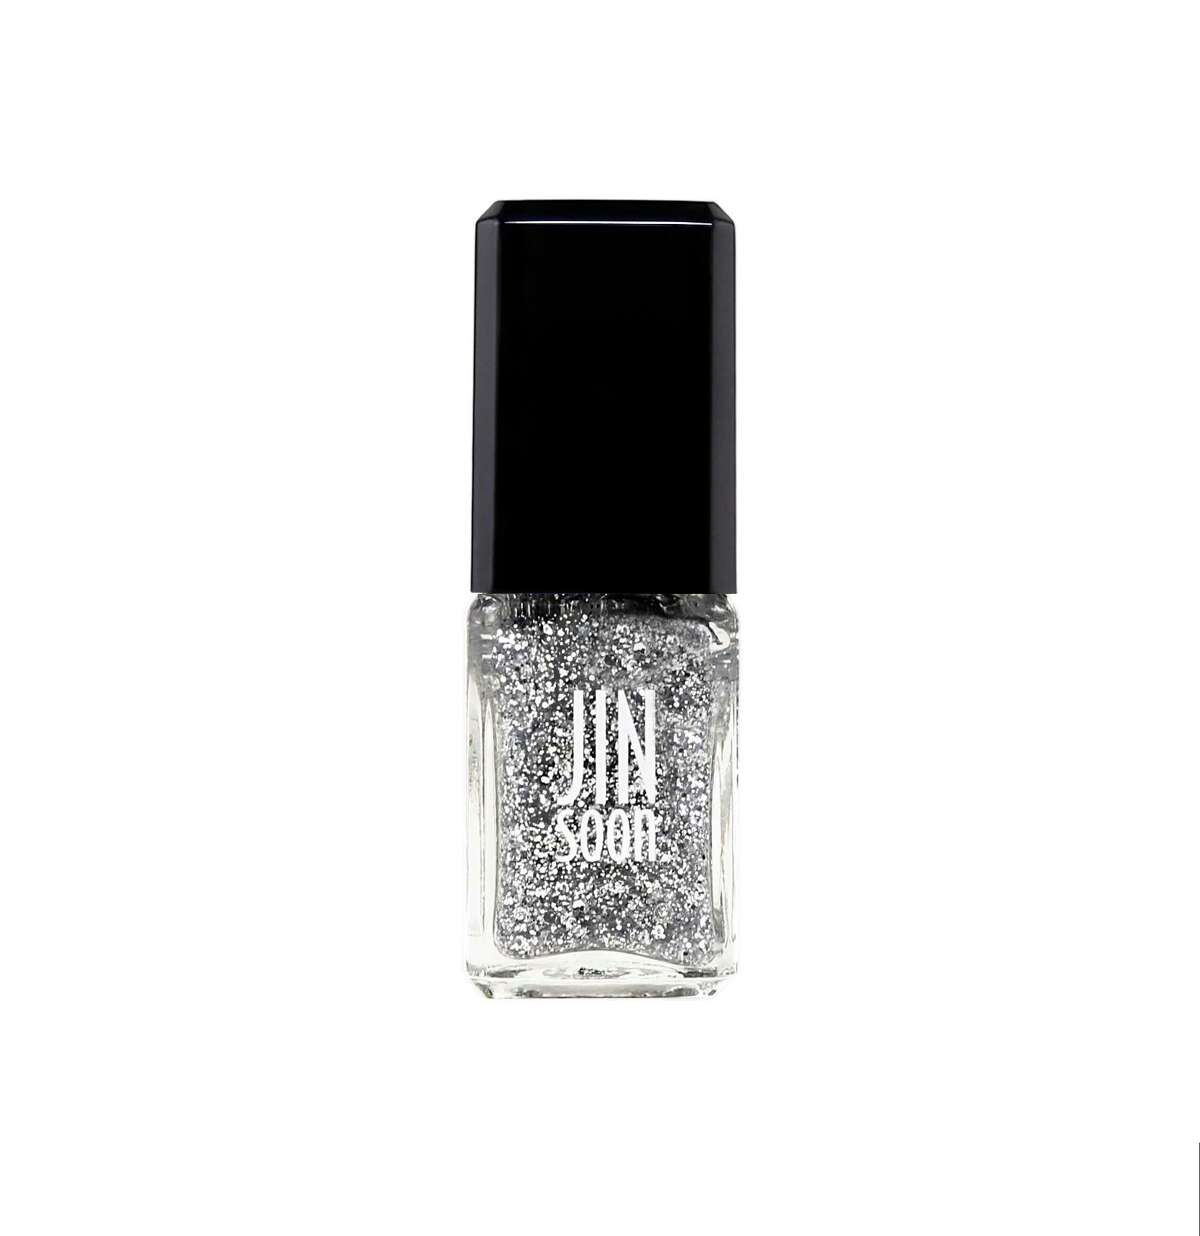 For Holiday 2017 JINsoon Nail Polish includes Glitzy, a silver glitter topper, included in the JINsoon Flapper Collection of three shades.